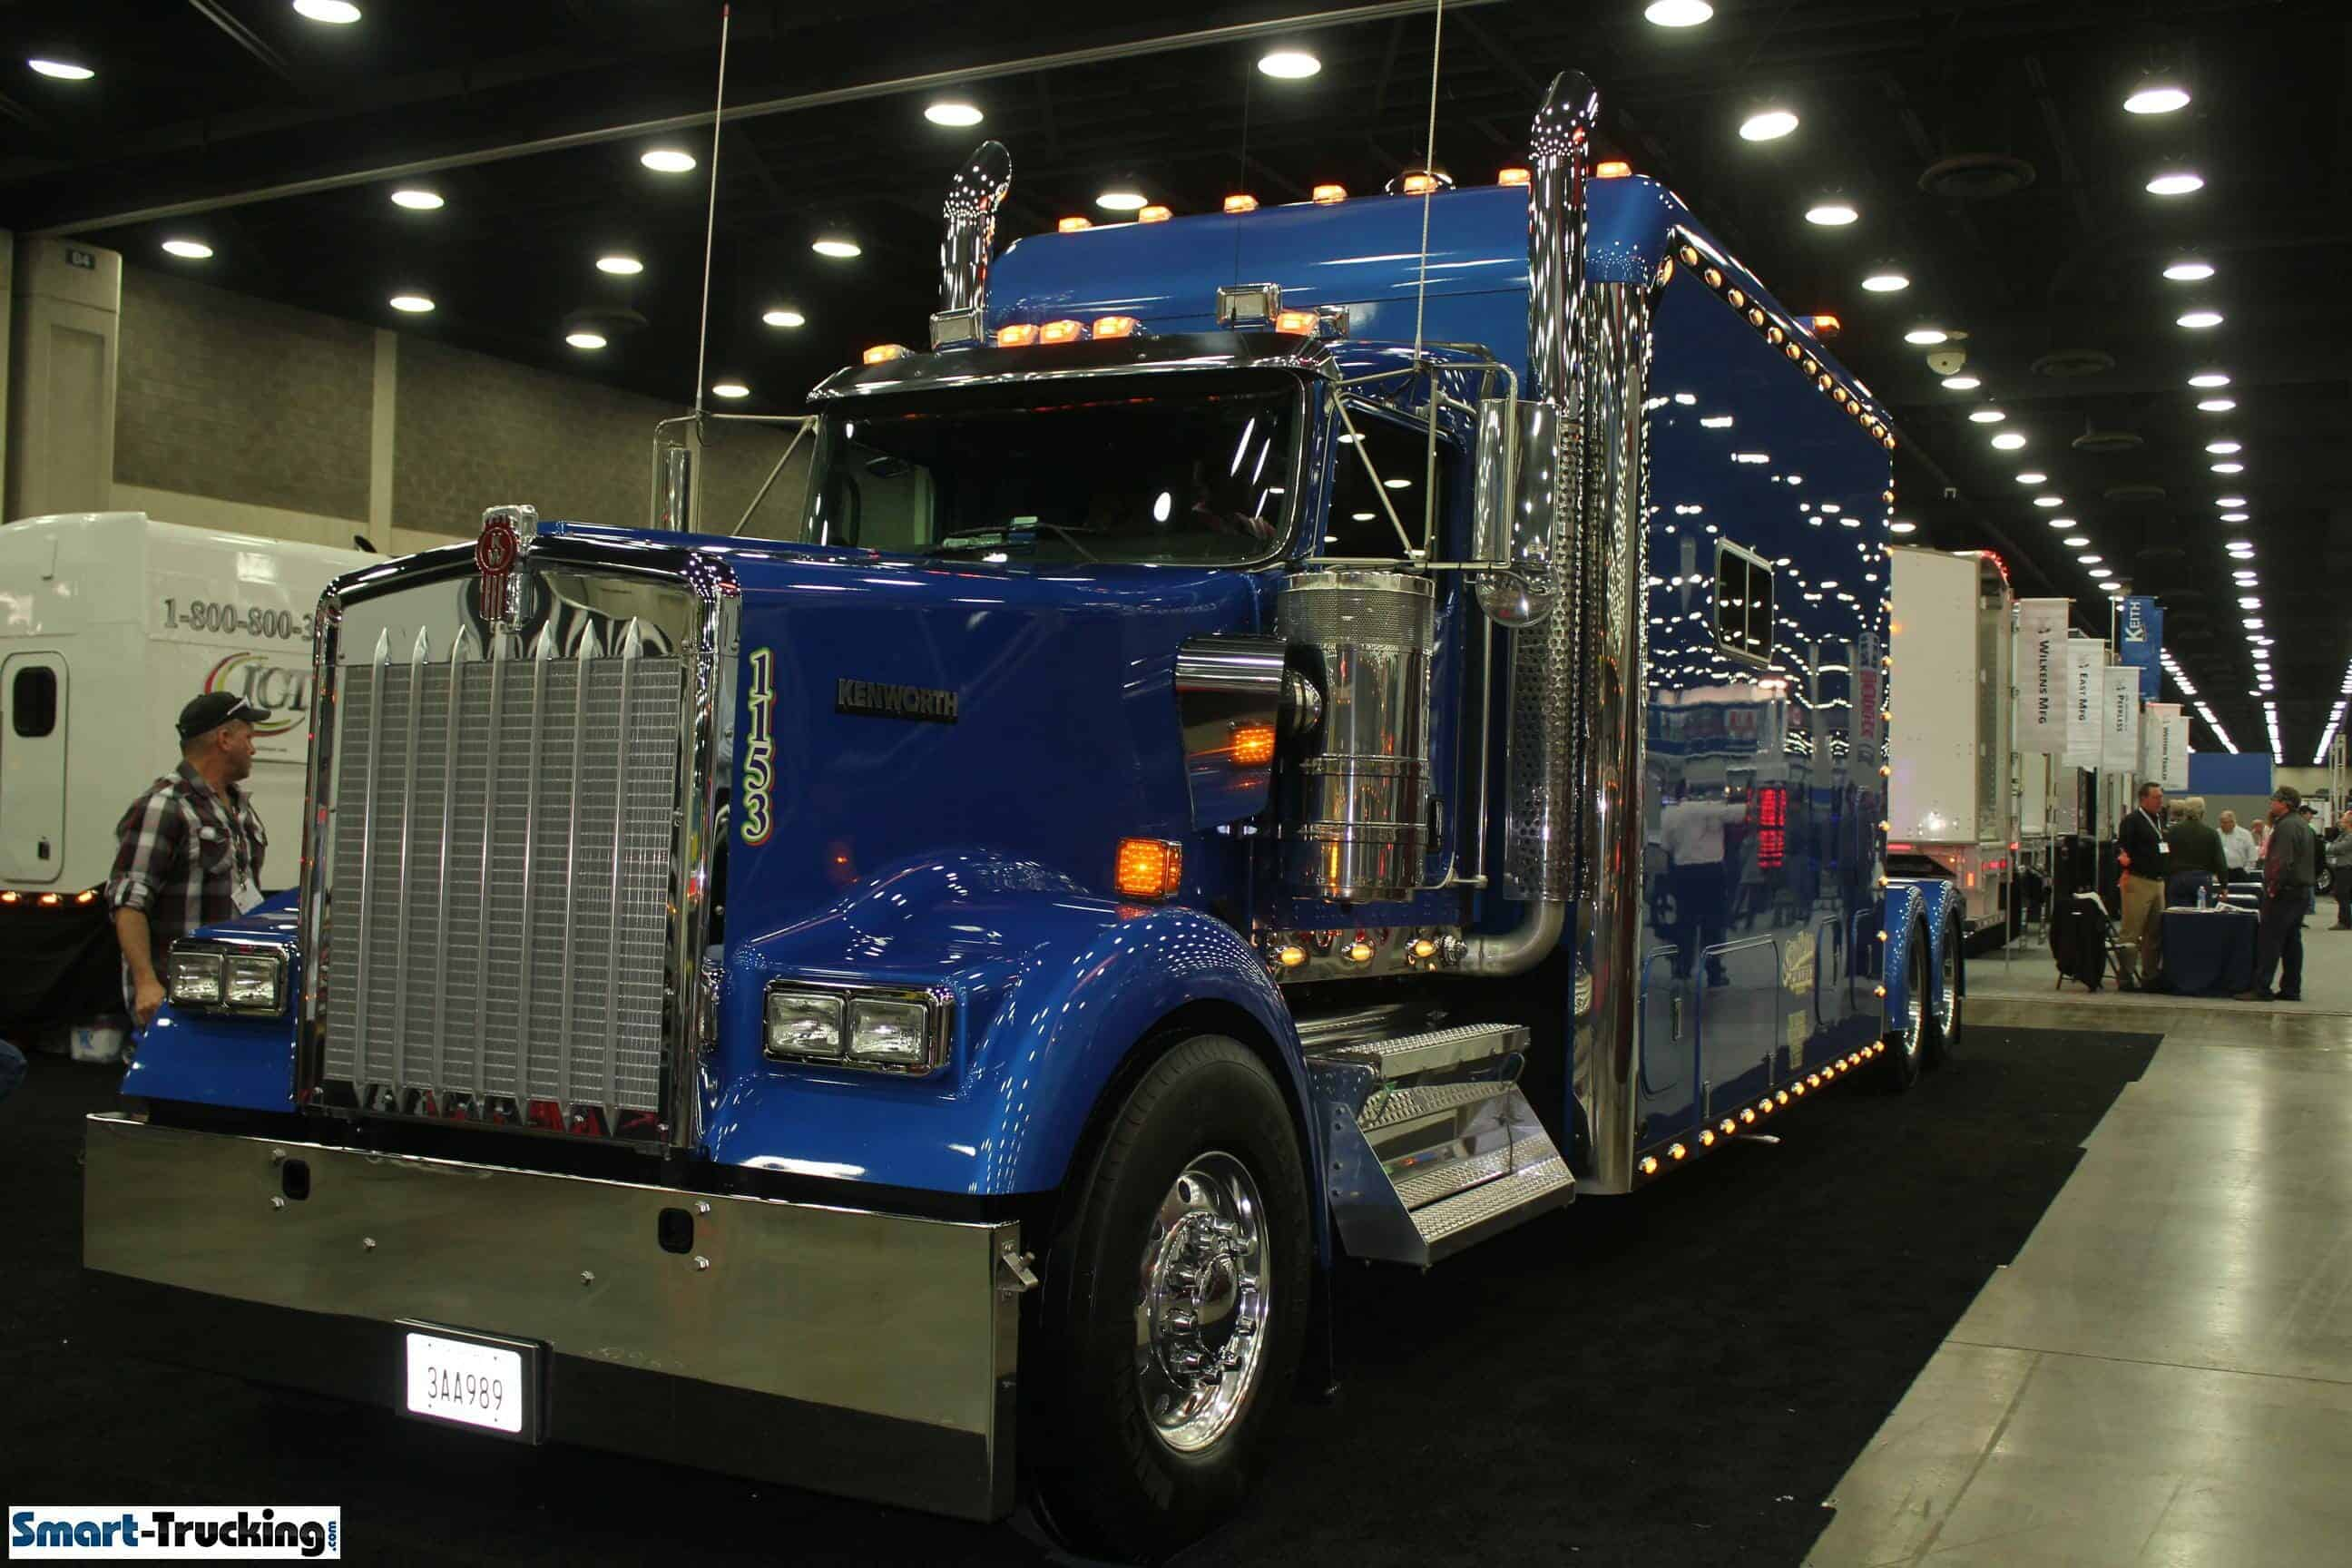 on big tugg peterbilttoby t co toby sleeper in just trucks for sale status hicks kw twitter